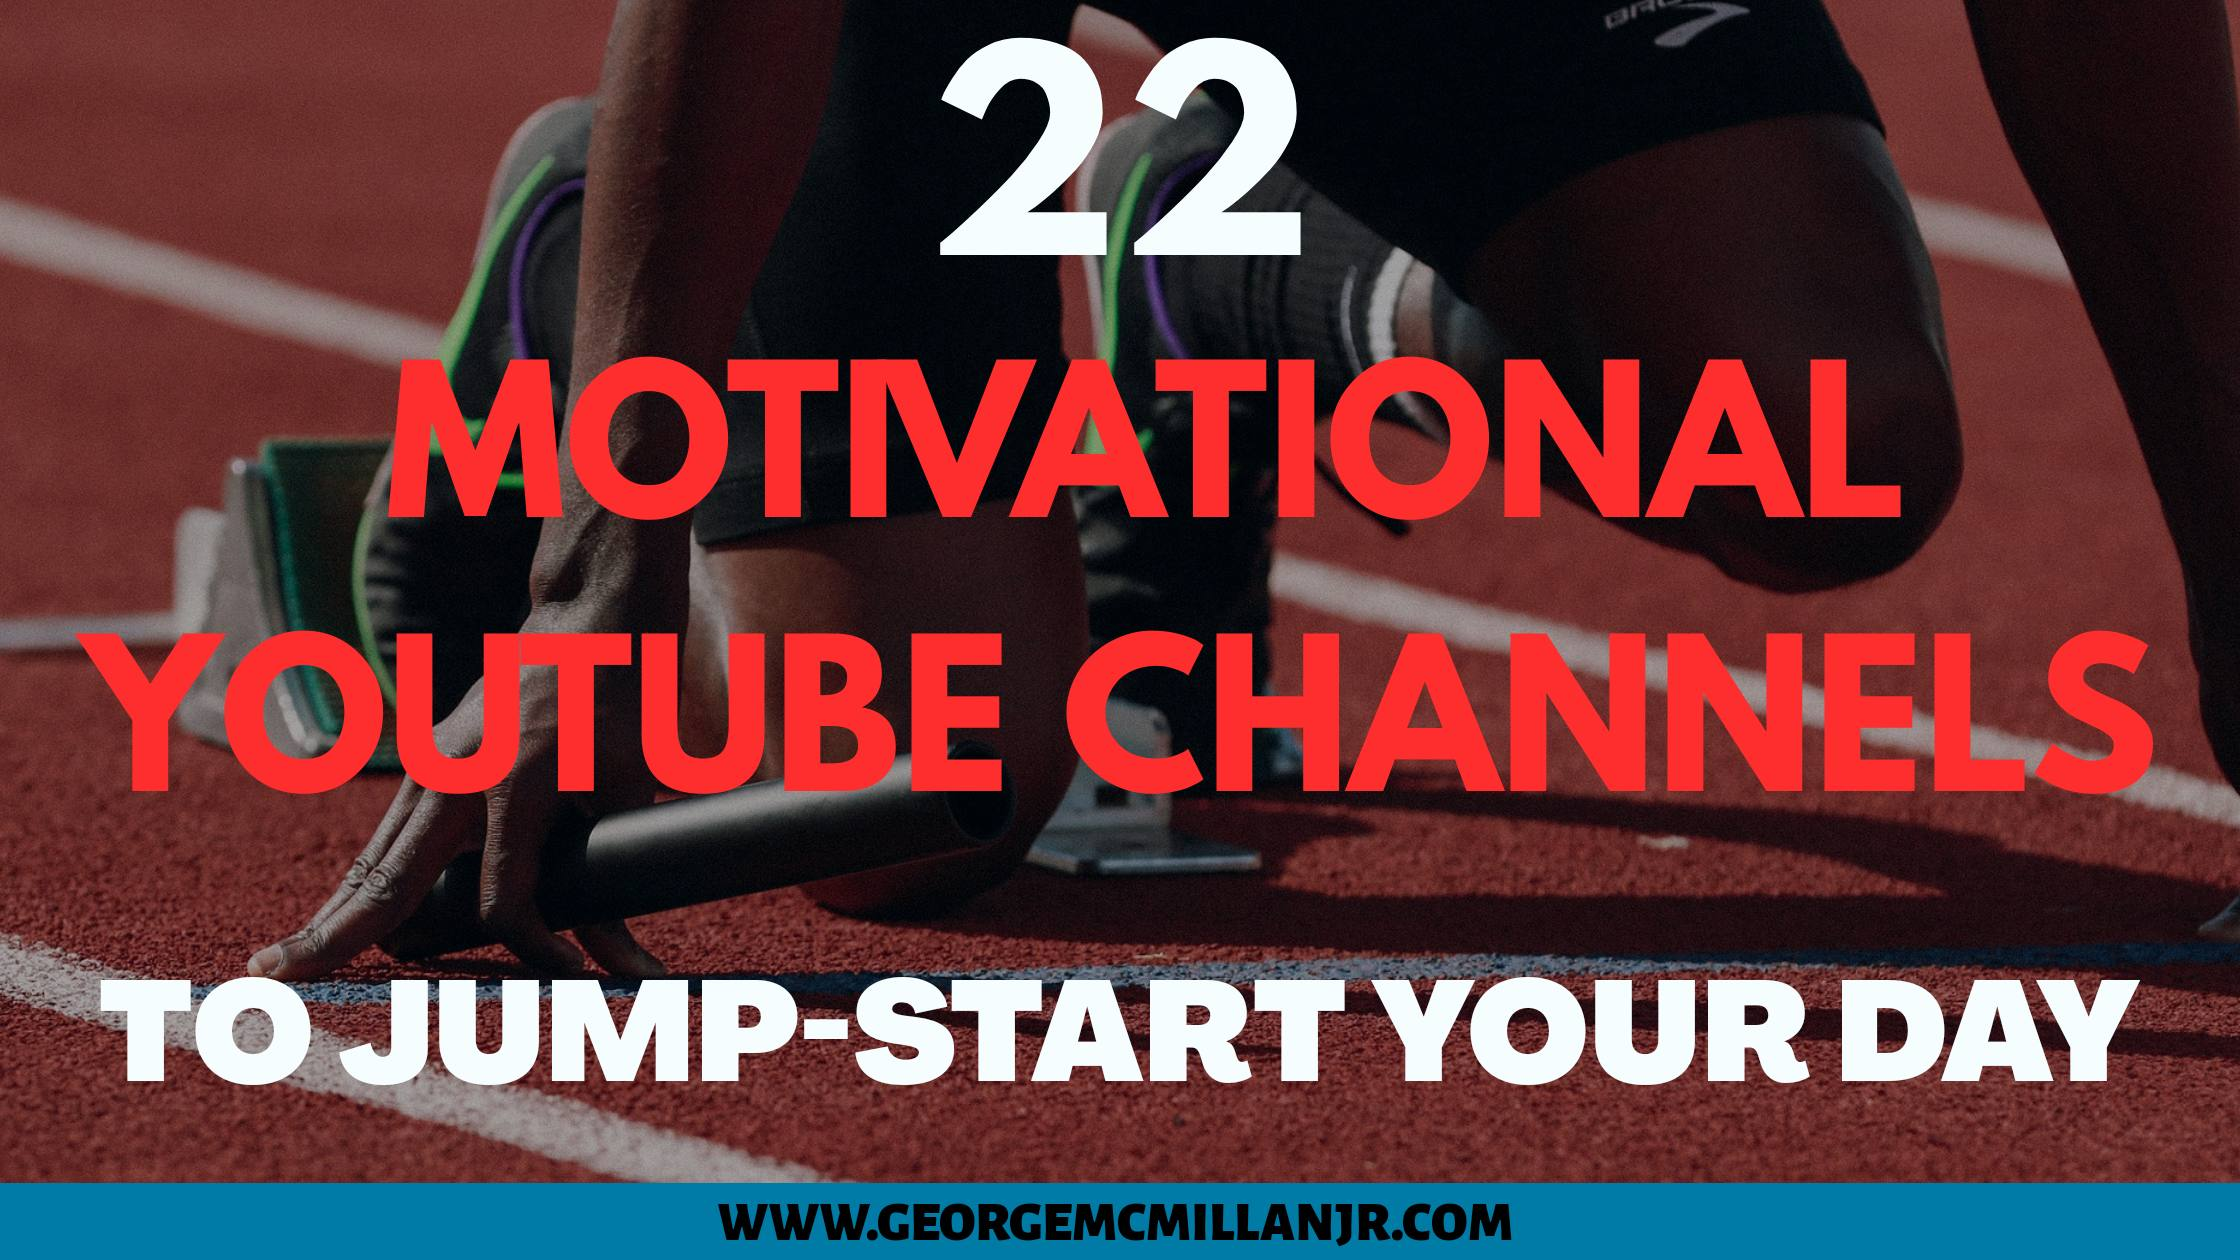 A blog post banner image of a track runner that says 22 Motivational YouTube Channels to Jump-start Your Day.